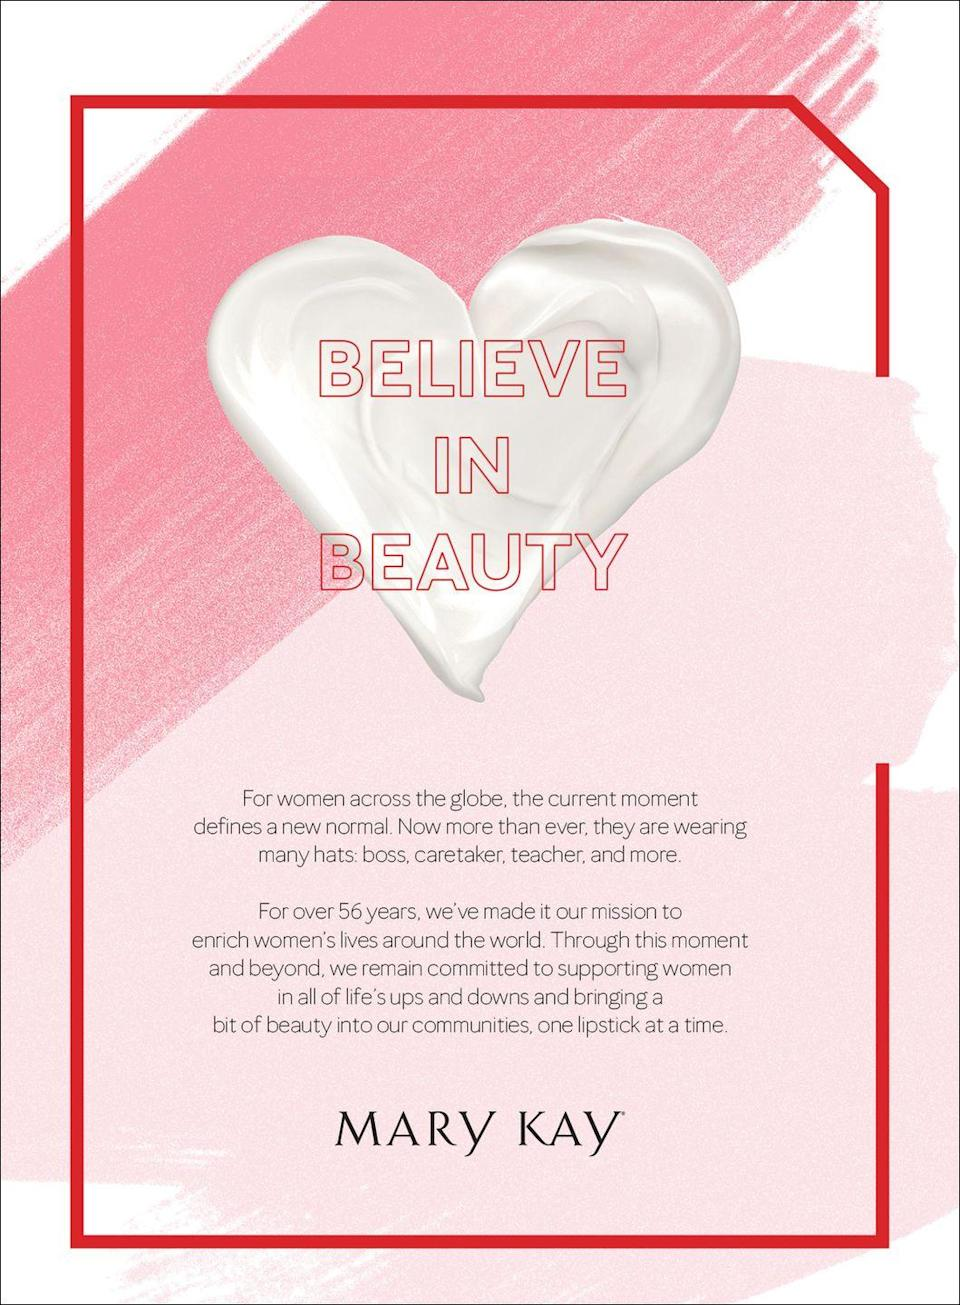 <p>Believe in Beauty.</p><p>For women across the globe, the current moment defines a new normal. Now more than ever, they are wearing many hats: boss, caretaker, teacher, and more.</p><p>For over 56 years, we've made it our mission to enrich women's lives around the world. Through this moment and beyond, we remain committed to supporting women in all of life's ups and downs and bringing a bit of beauty into our communities, one lipstick at a time.</p>